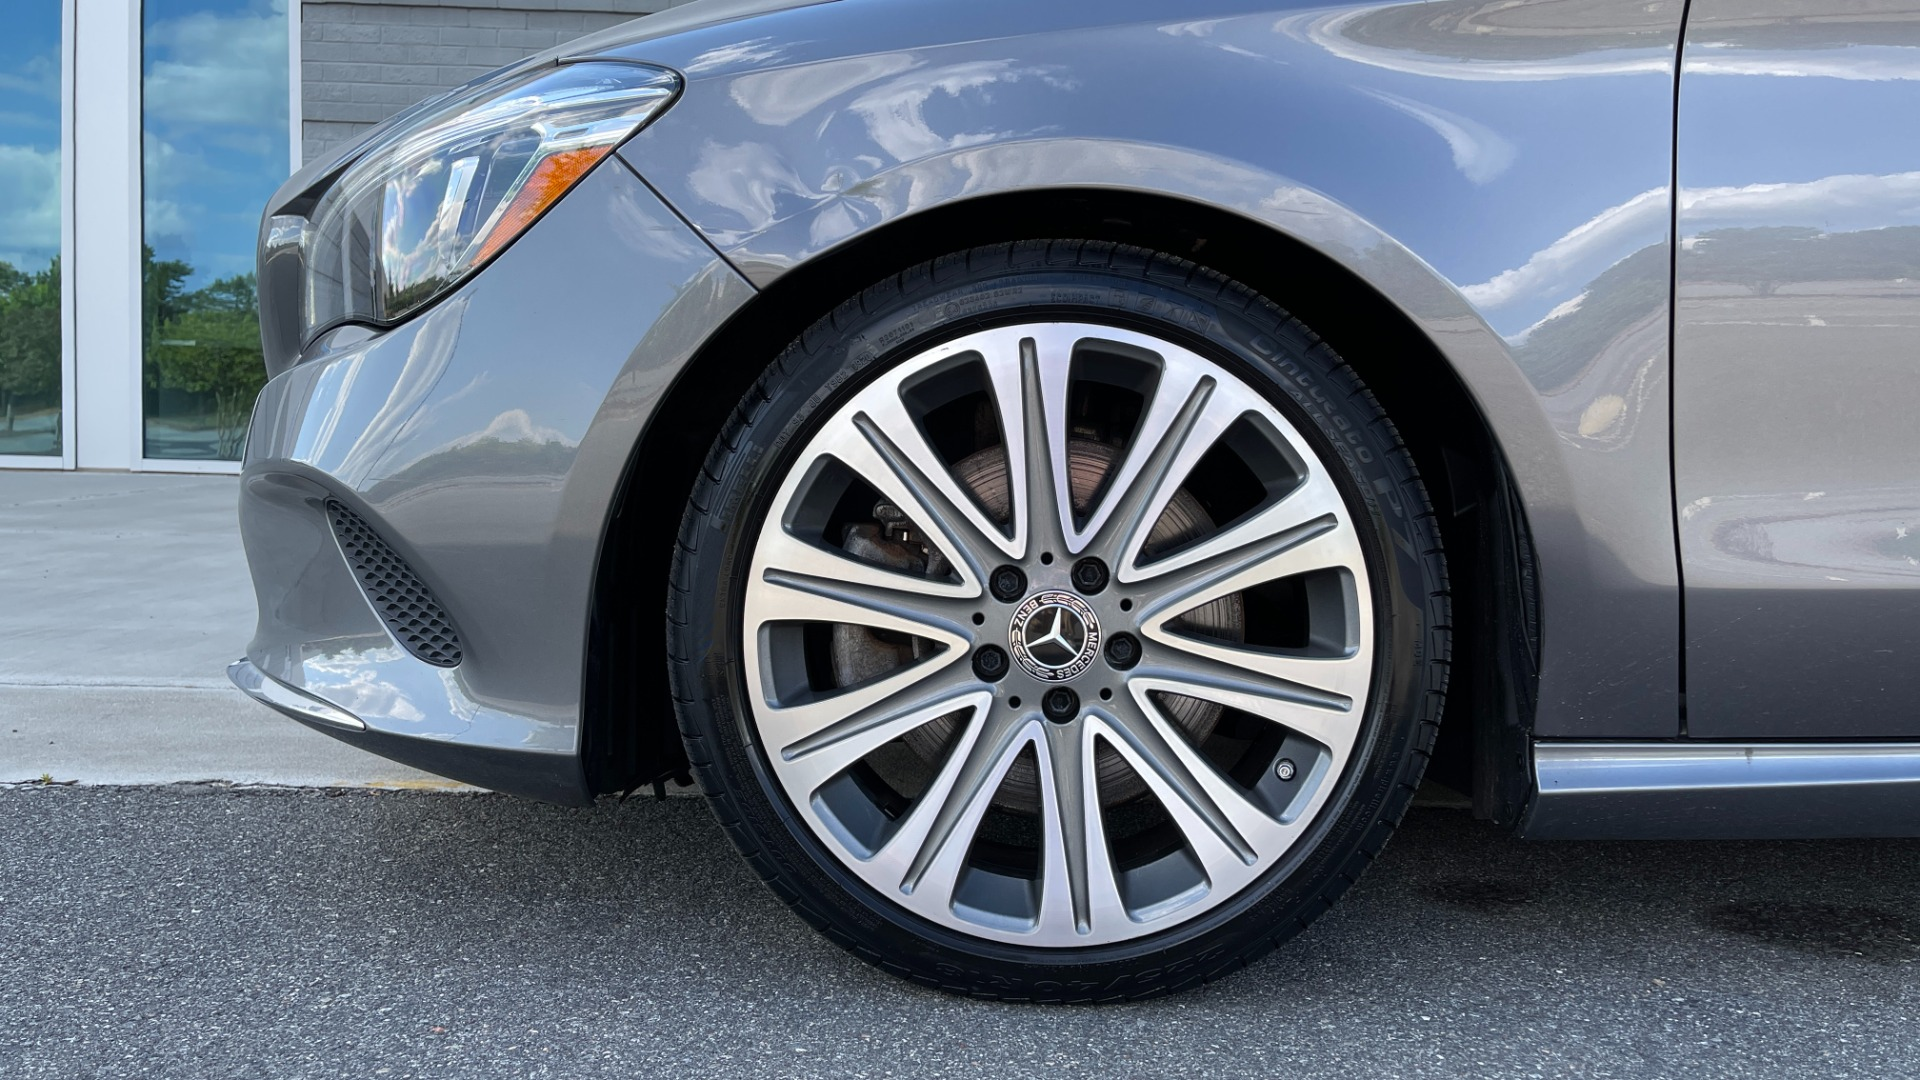 Used 2019 Mercedes-Benz CLA 250 4MATIC PREM & CONV PKG / APPLE / PANO-ROOF / H/K SND / REARVIEW for sale $29,795 at Formula Imports in Charlotte NC 28227 67